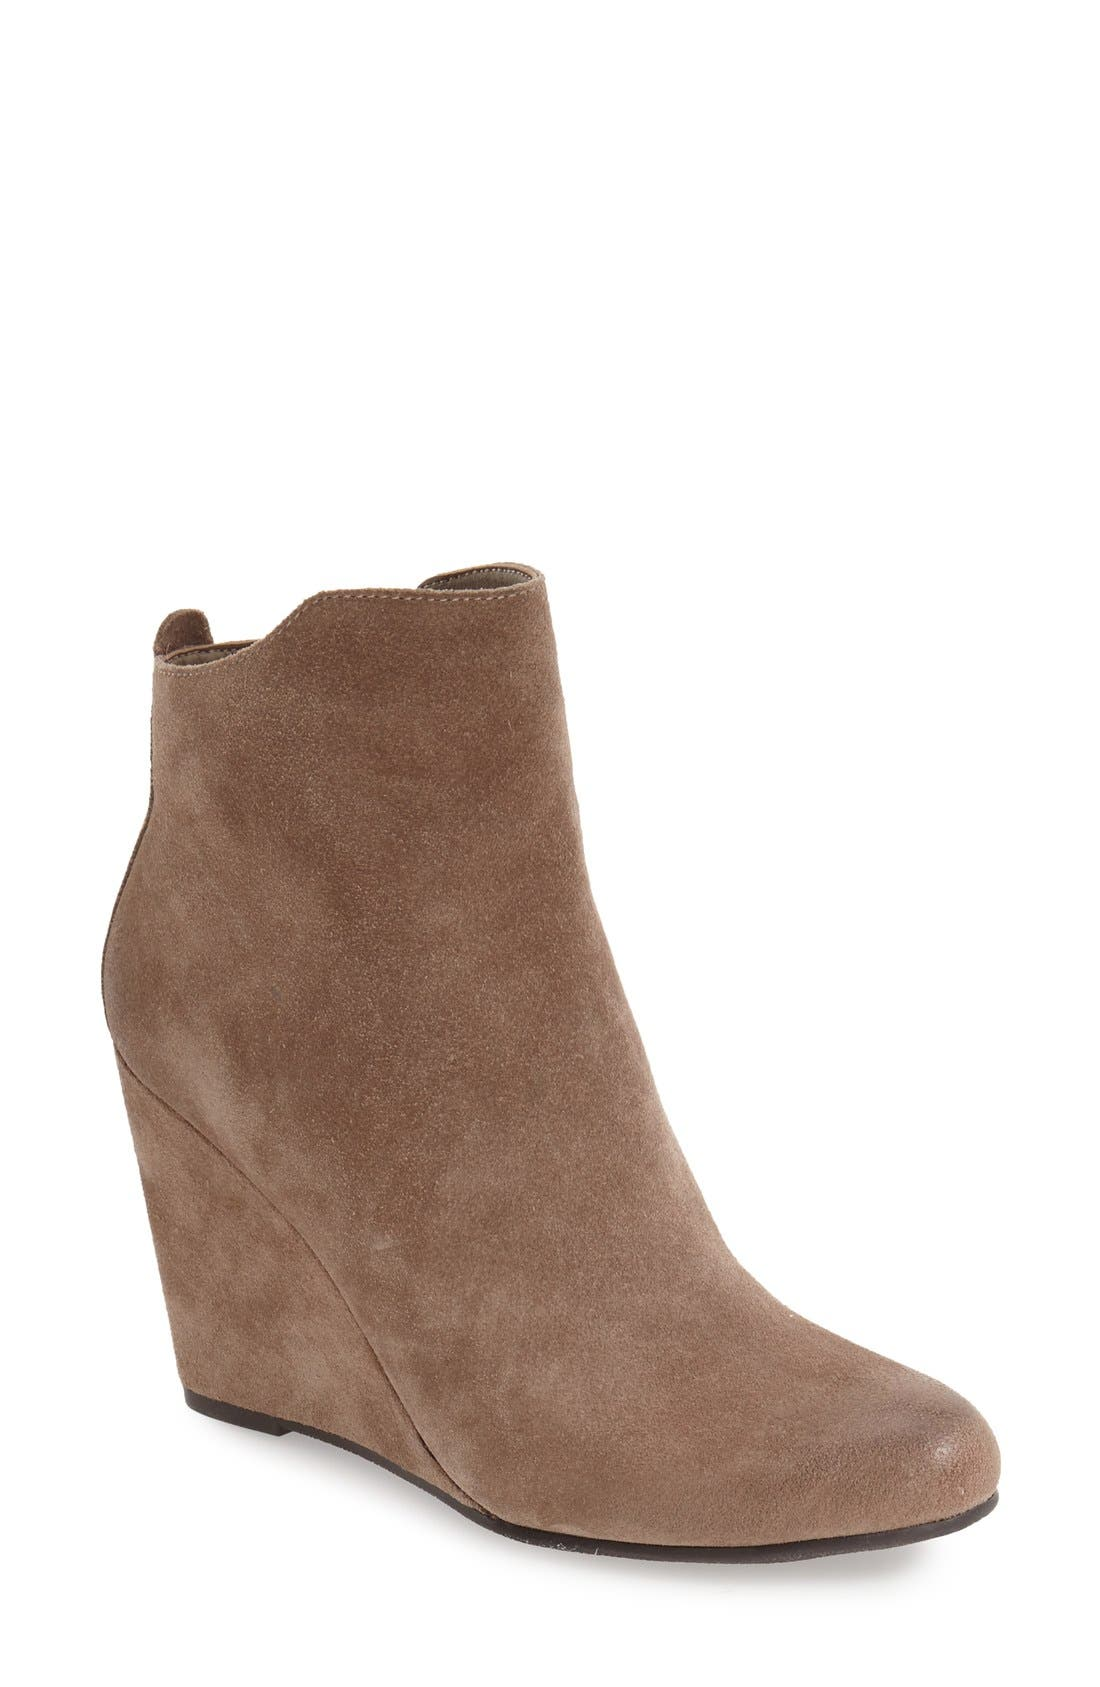 Alternate Image 1 Selected - Dolce Vita 'Gracie' Wedge Bootie (Women)